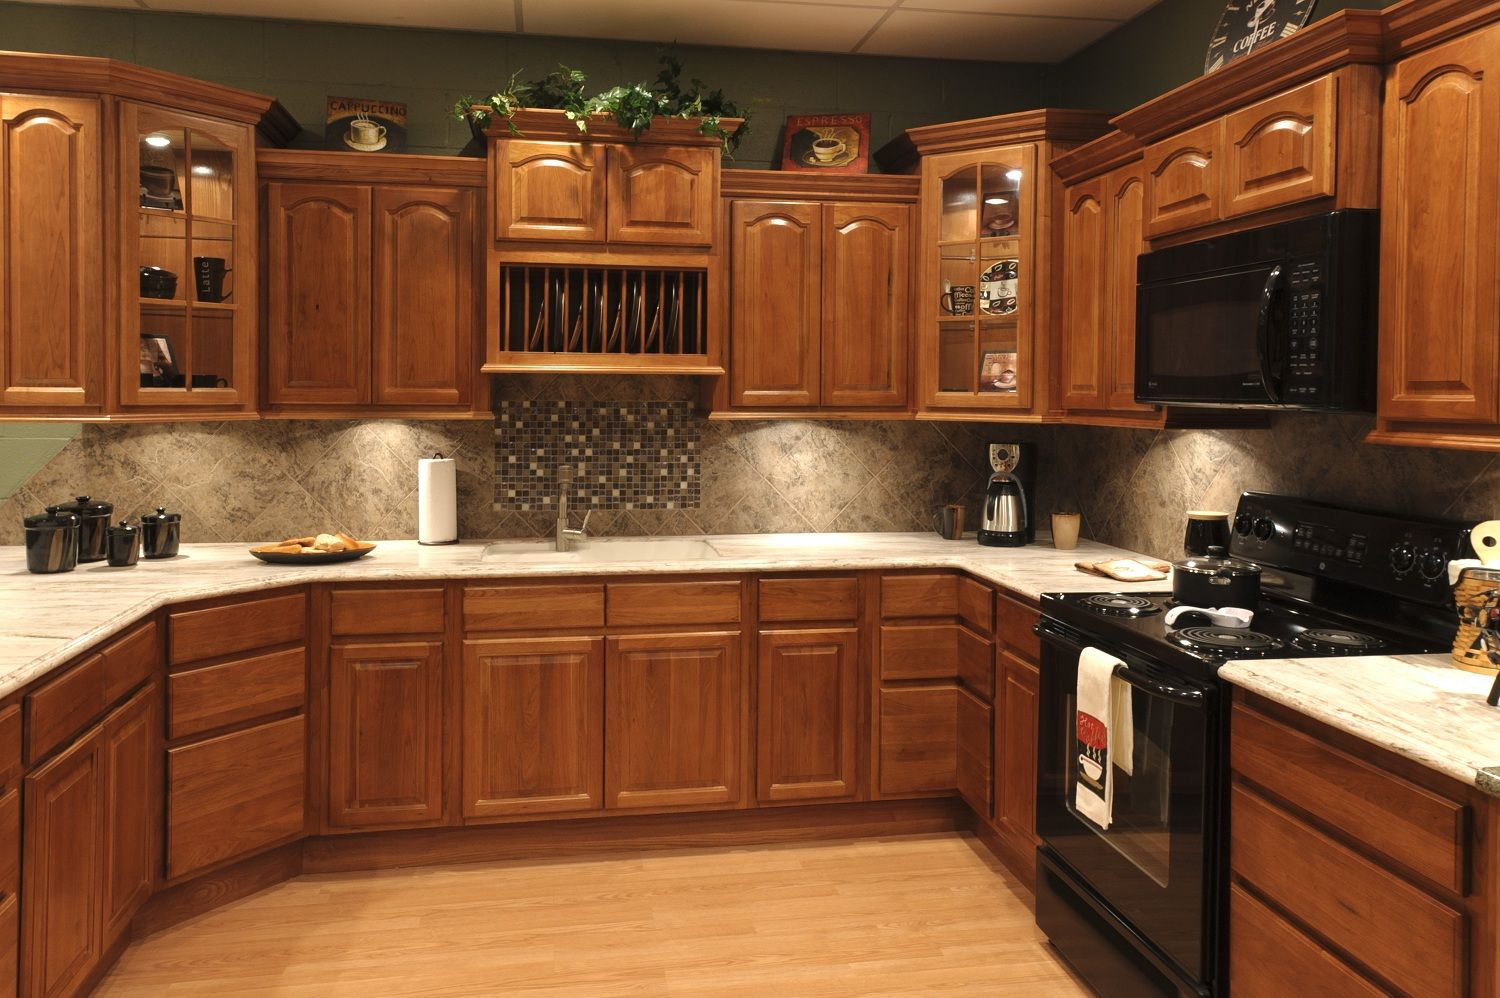 Pictures Of Beautiful Kitchens With White Cabinets